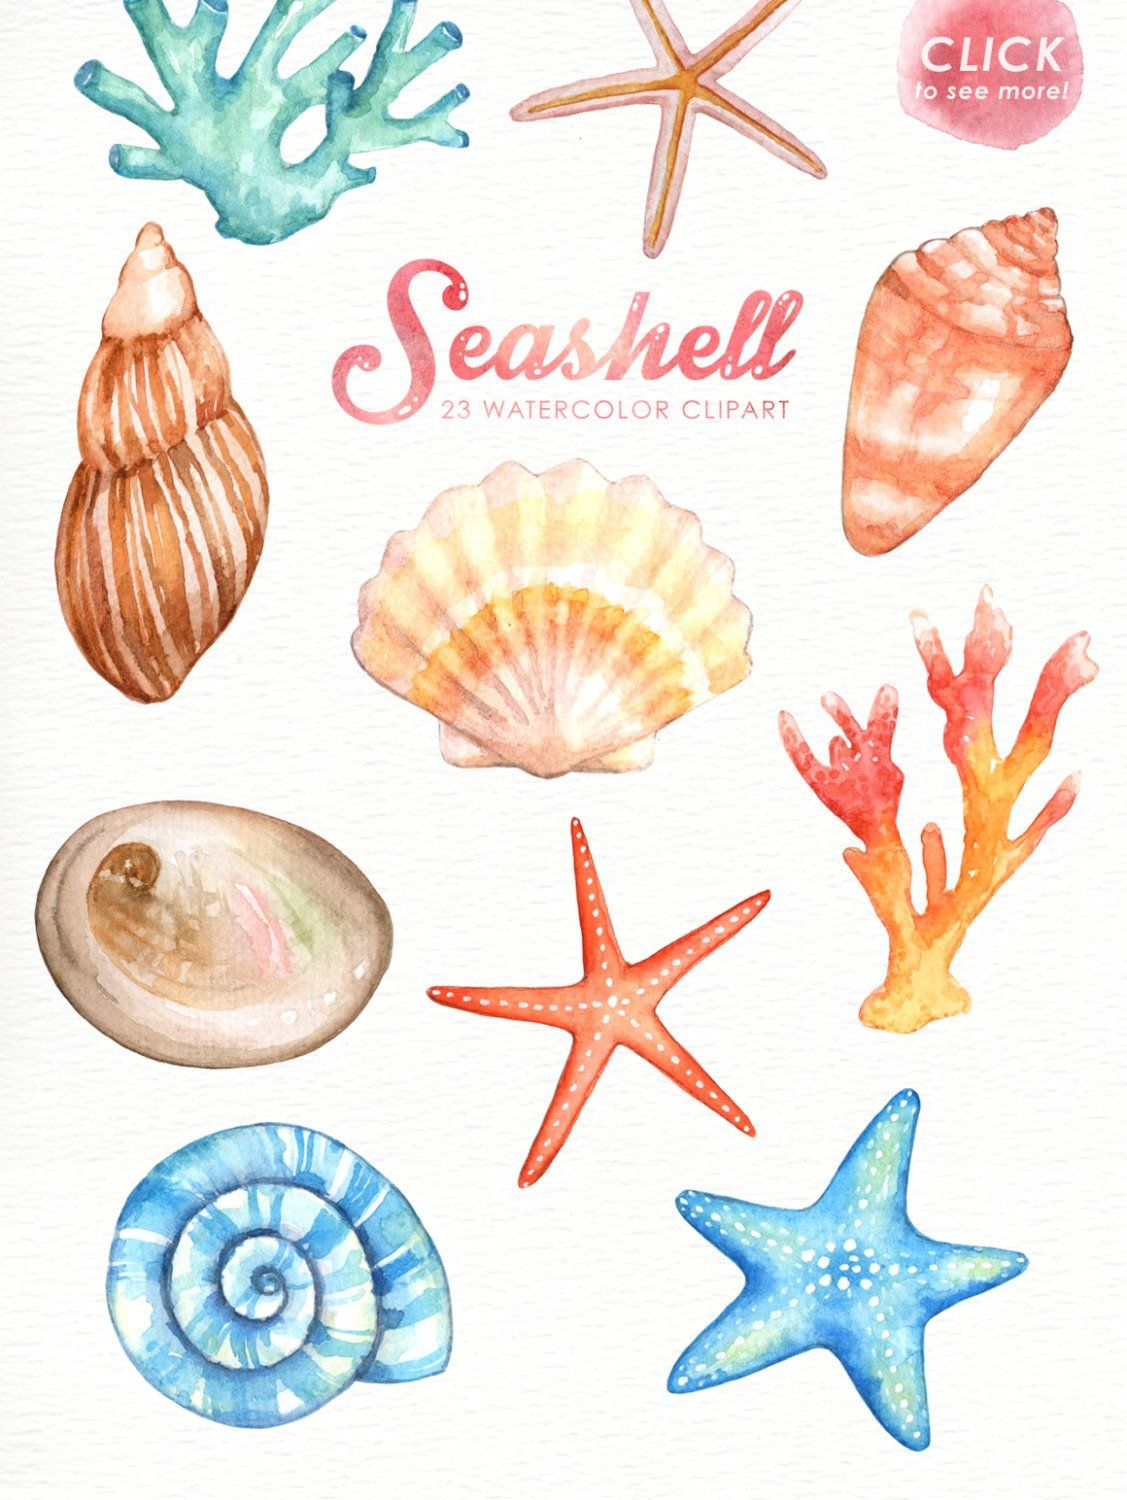 Seashells Watercolor Clipart Nautical Watercolor Clip Art Ocean Shell Starfish Coral Beach Wedding Clipart Summer Clipart Invitation Nautical Watercolor Coral Watercolor Watercolor Clipart